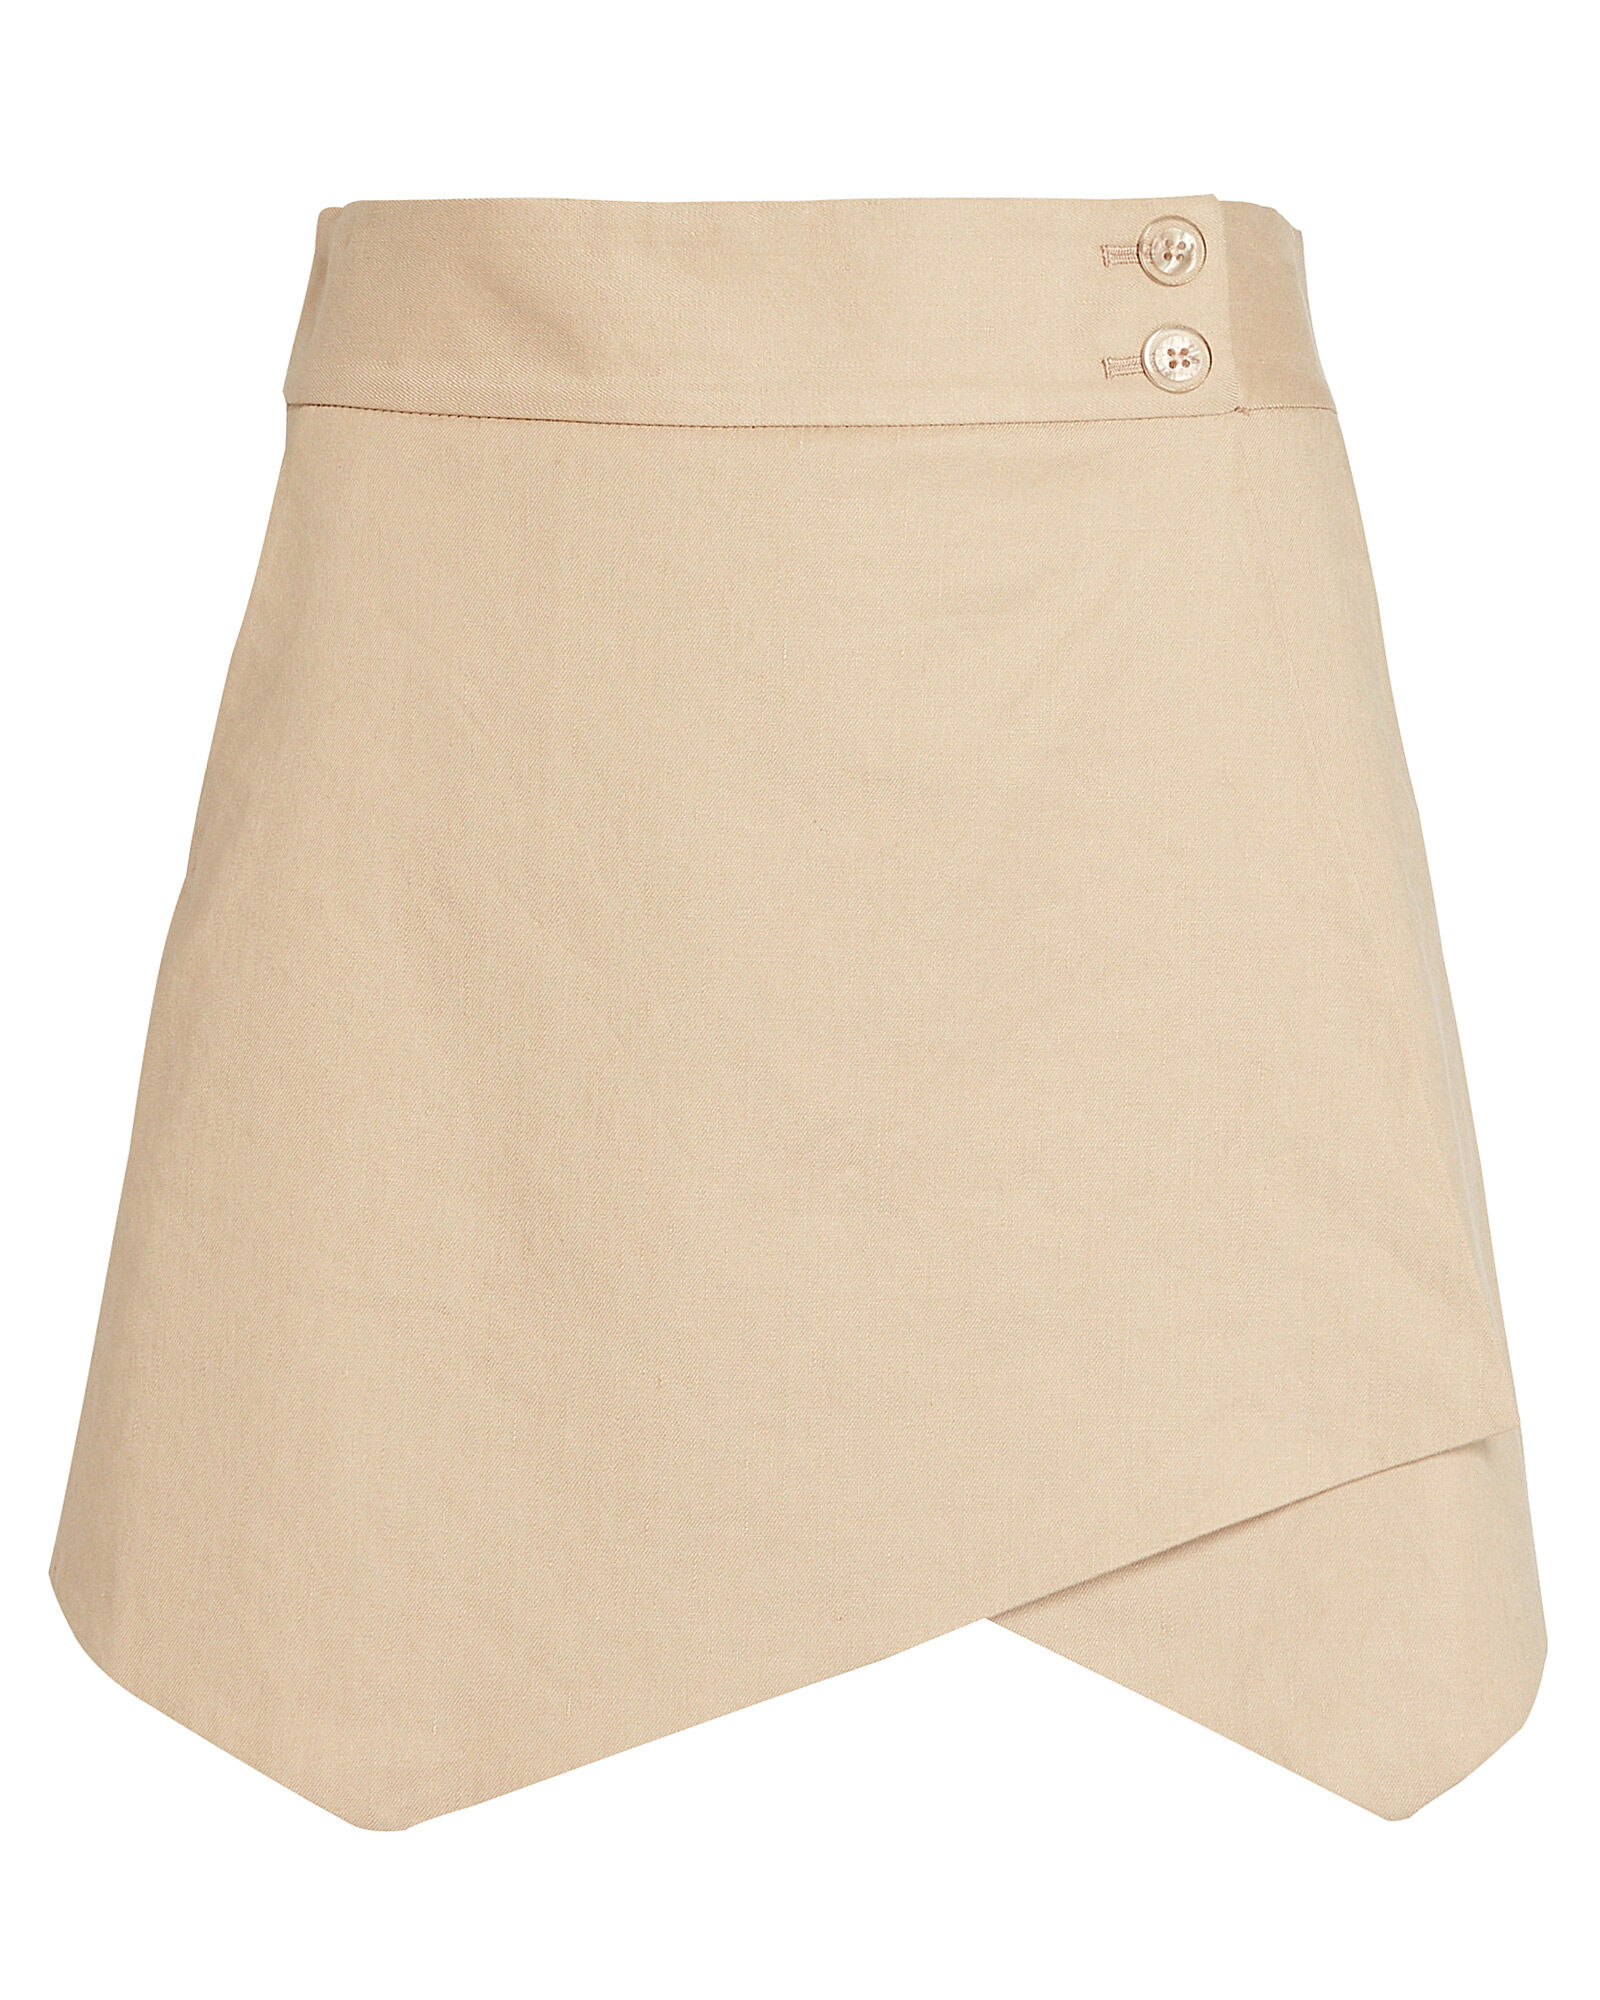 Thomas Wrap Skort, BEIGE, hi-res